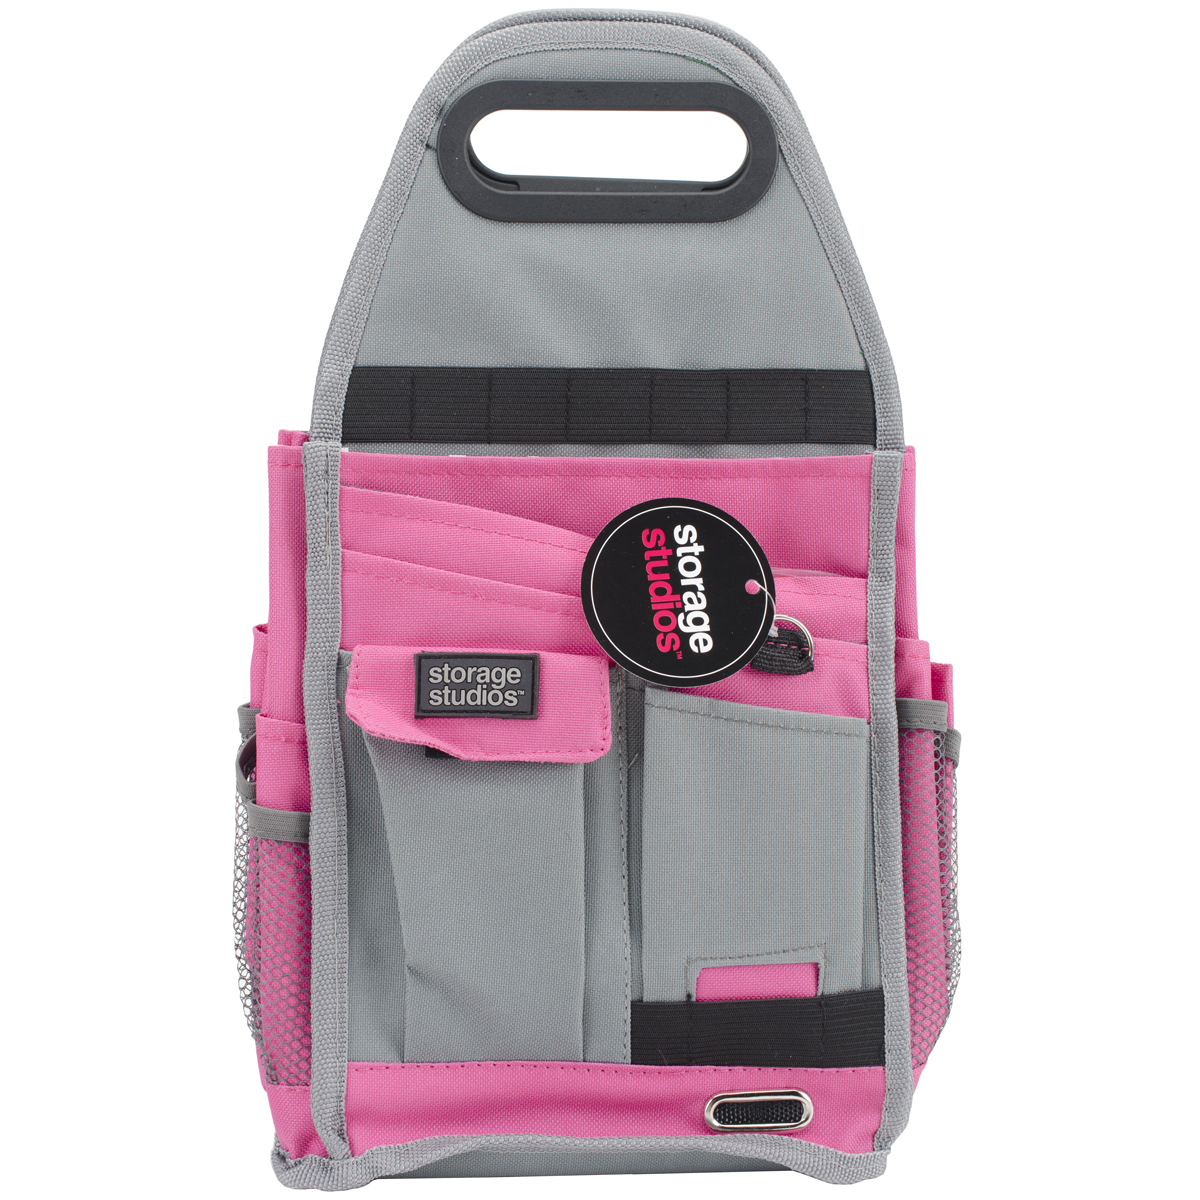 "Storage Studios Spinning Craft Tote-7.25""X7.75""X15"", Pink & Gray"